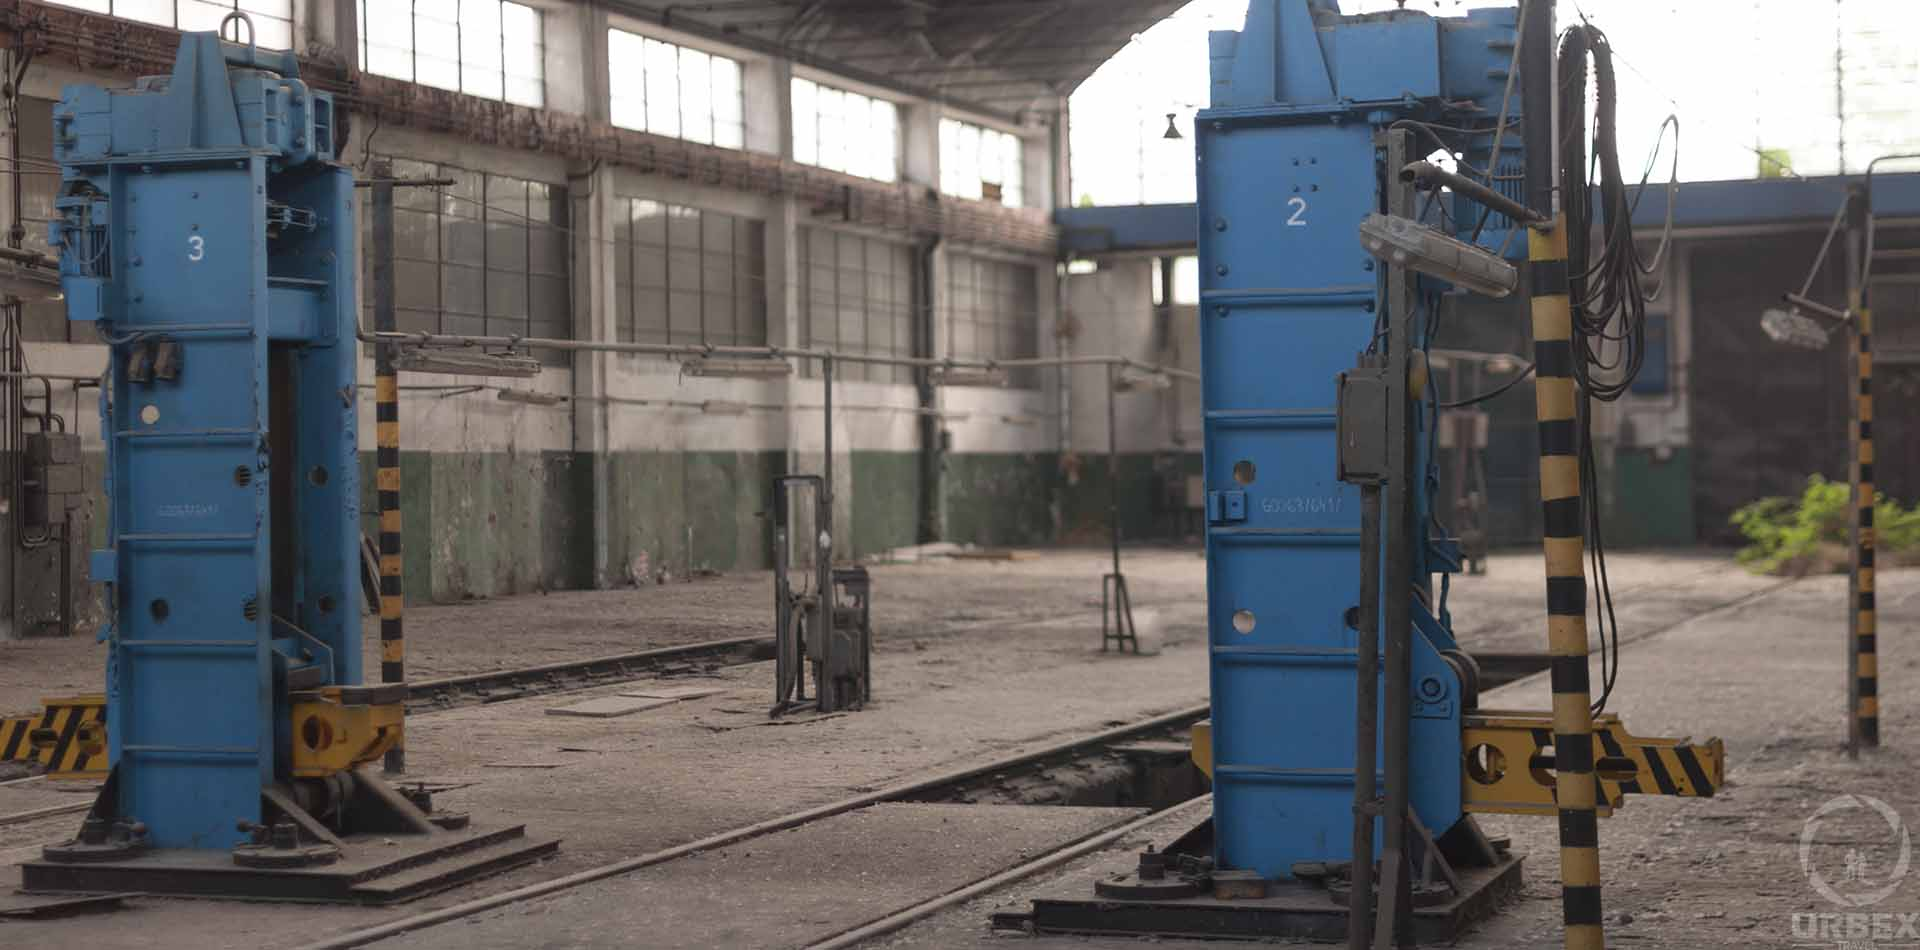 abandoned train workshop in poland